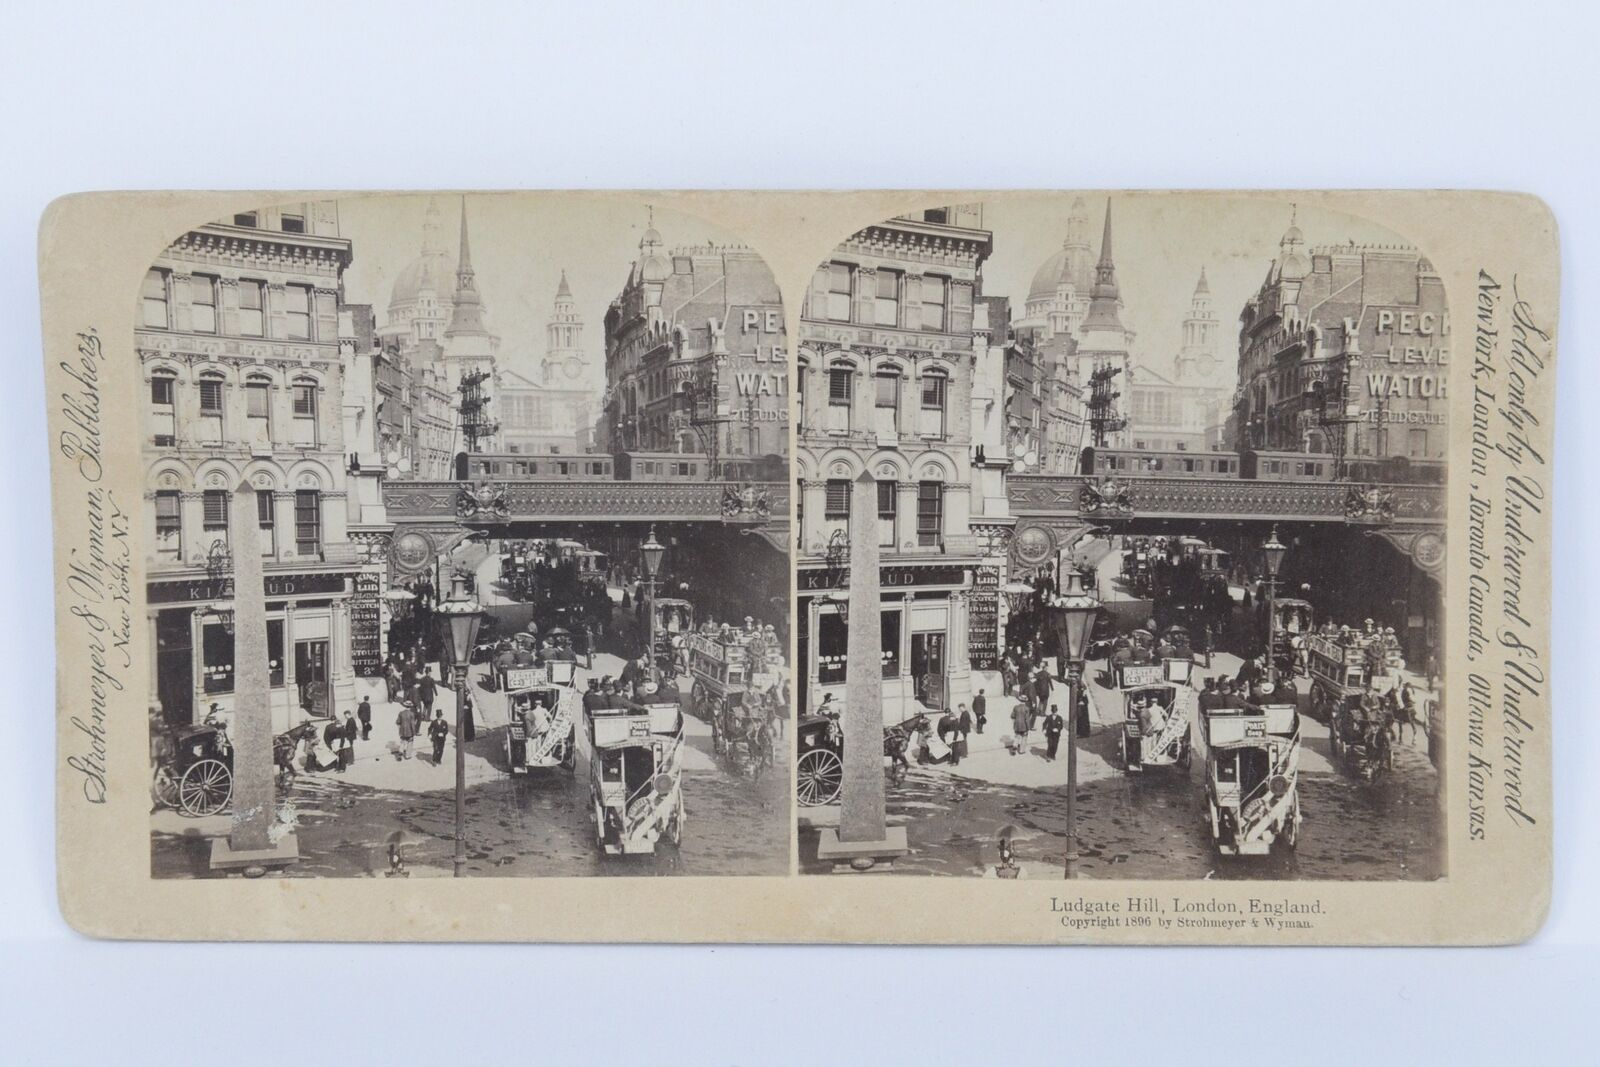 PHOTO STEREO VINTAGE Ludgate Hill London England 1896 Professionally c...